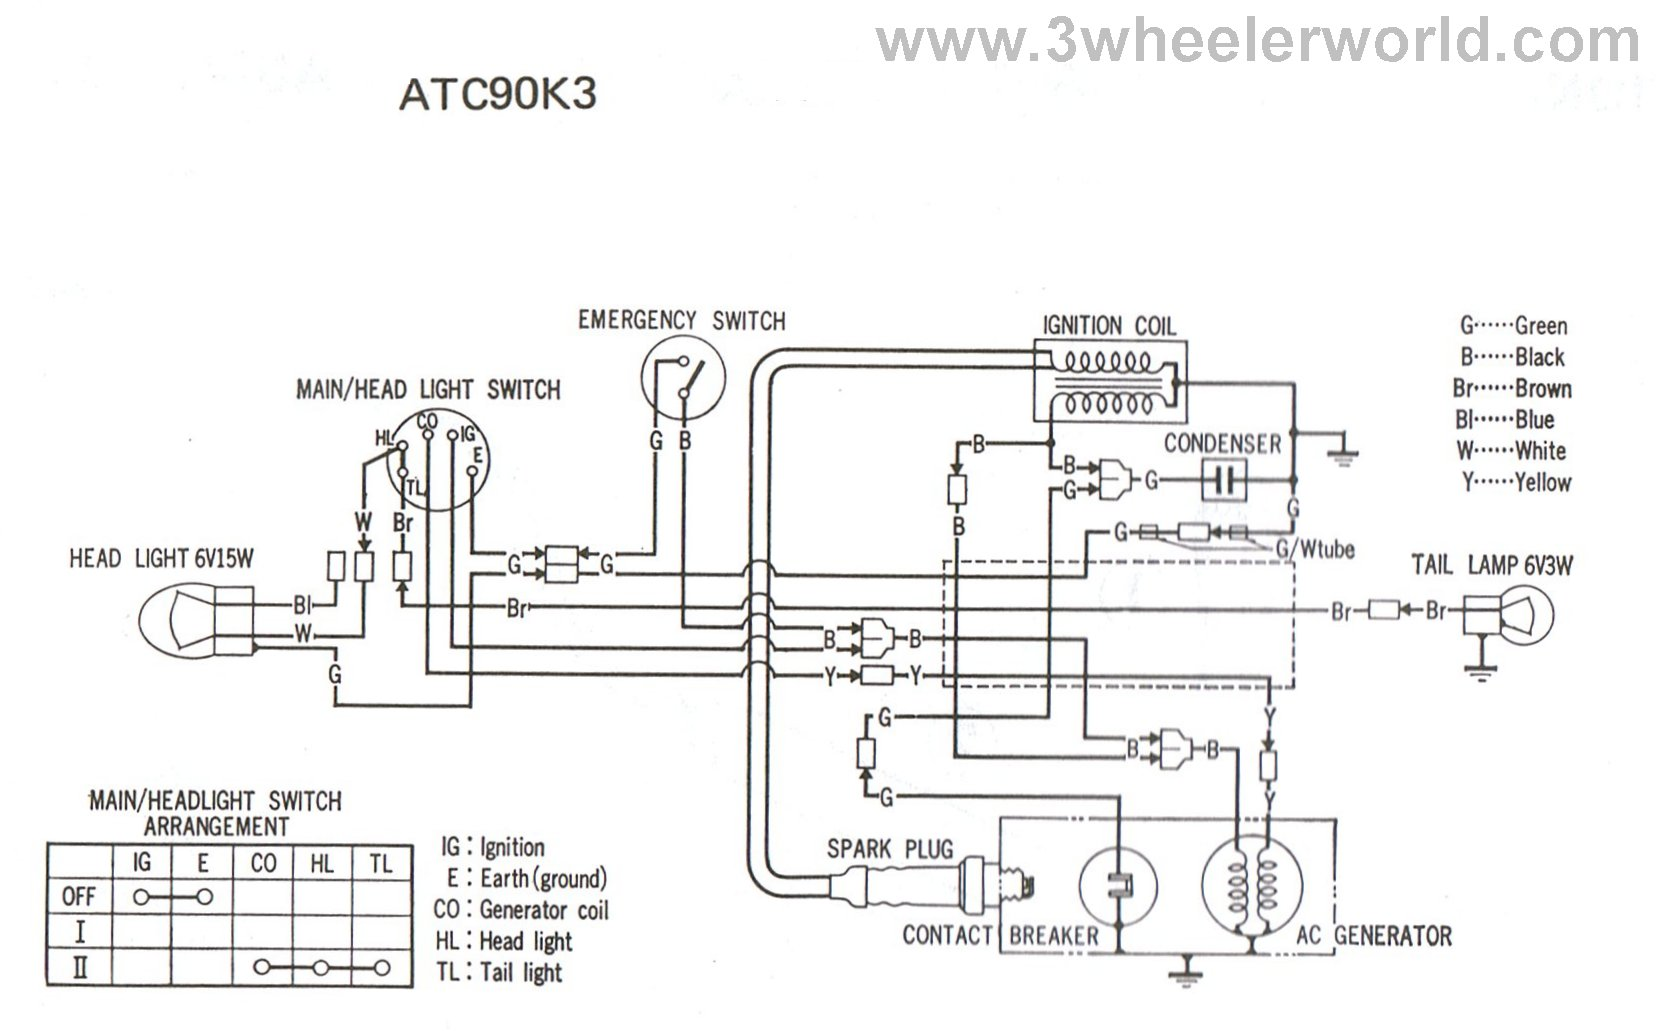 ATC90K3HM www 3wheelerworld com oldsite files wiring atc90k3 Basic Electrical Wiring Diagrams at gsmx.co